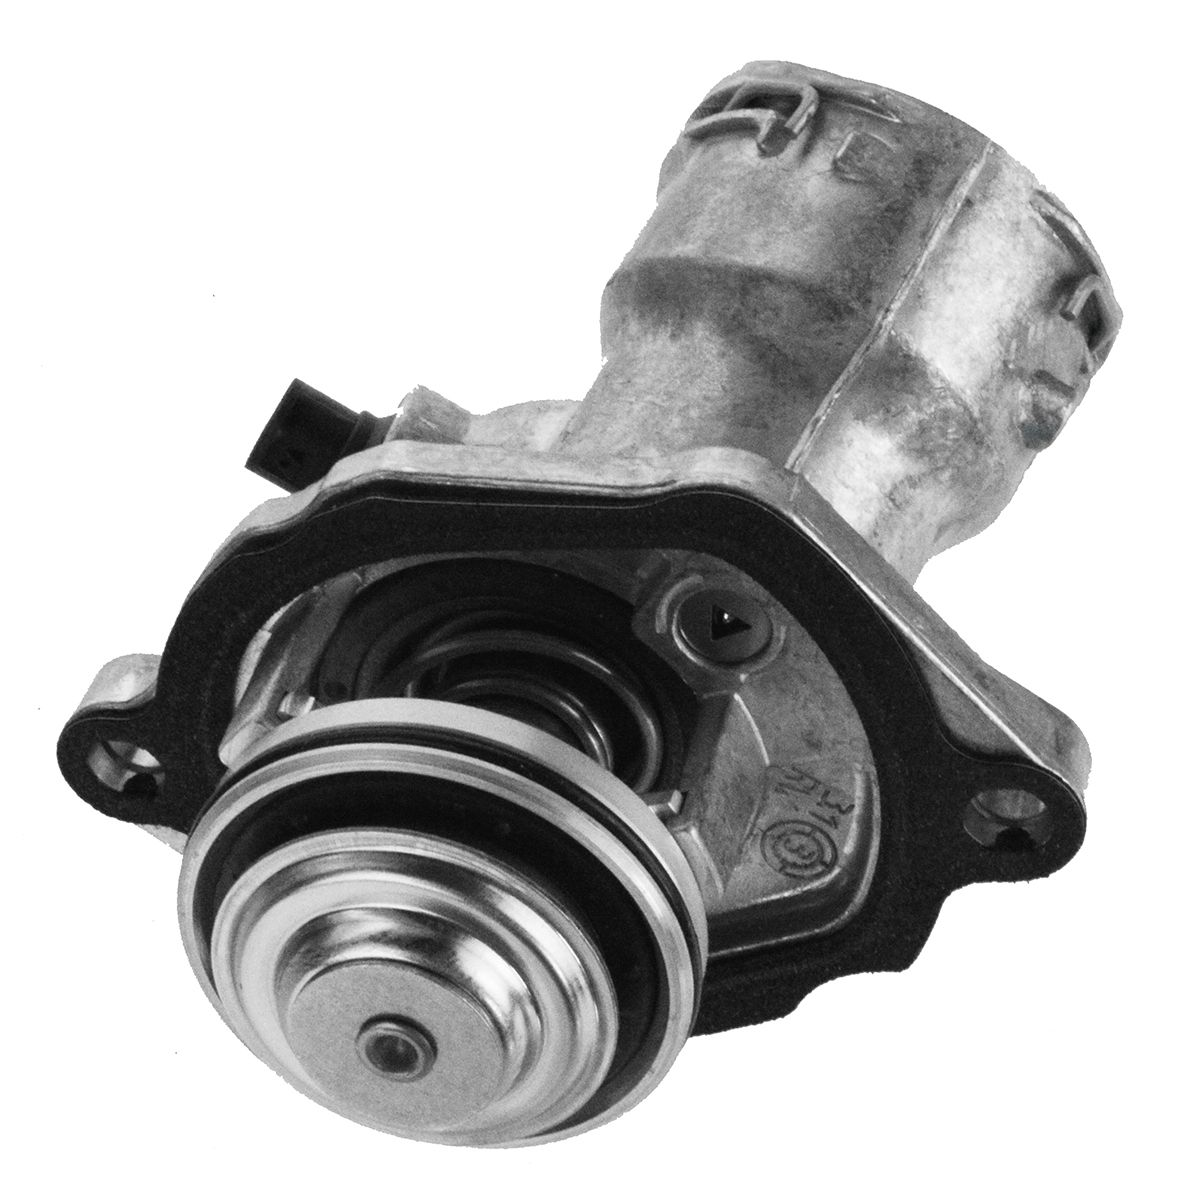 Thermostat W Housing For Mercedes Benz C230 C280 C300